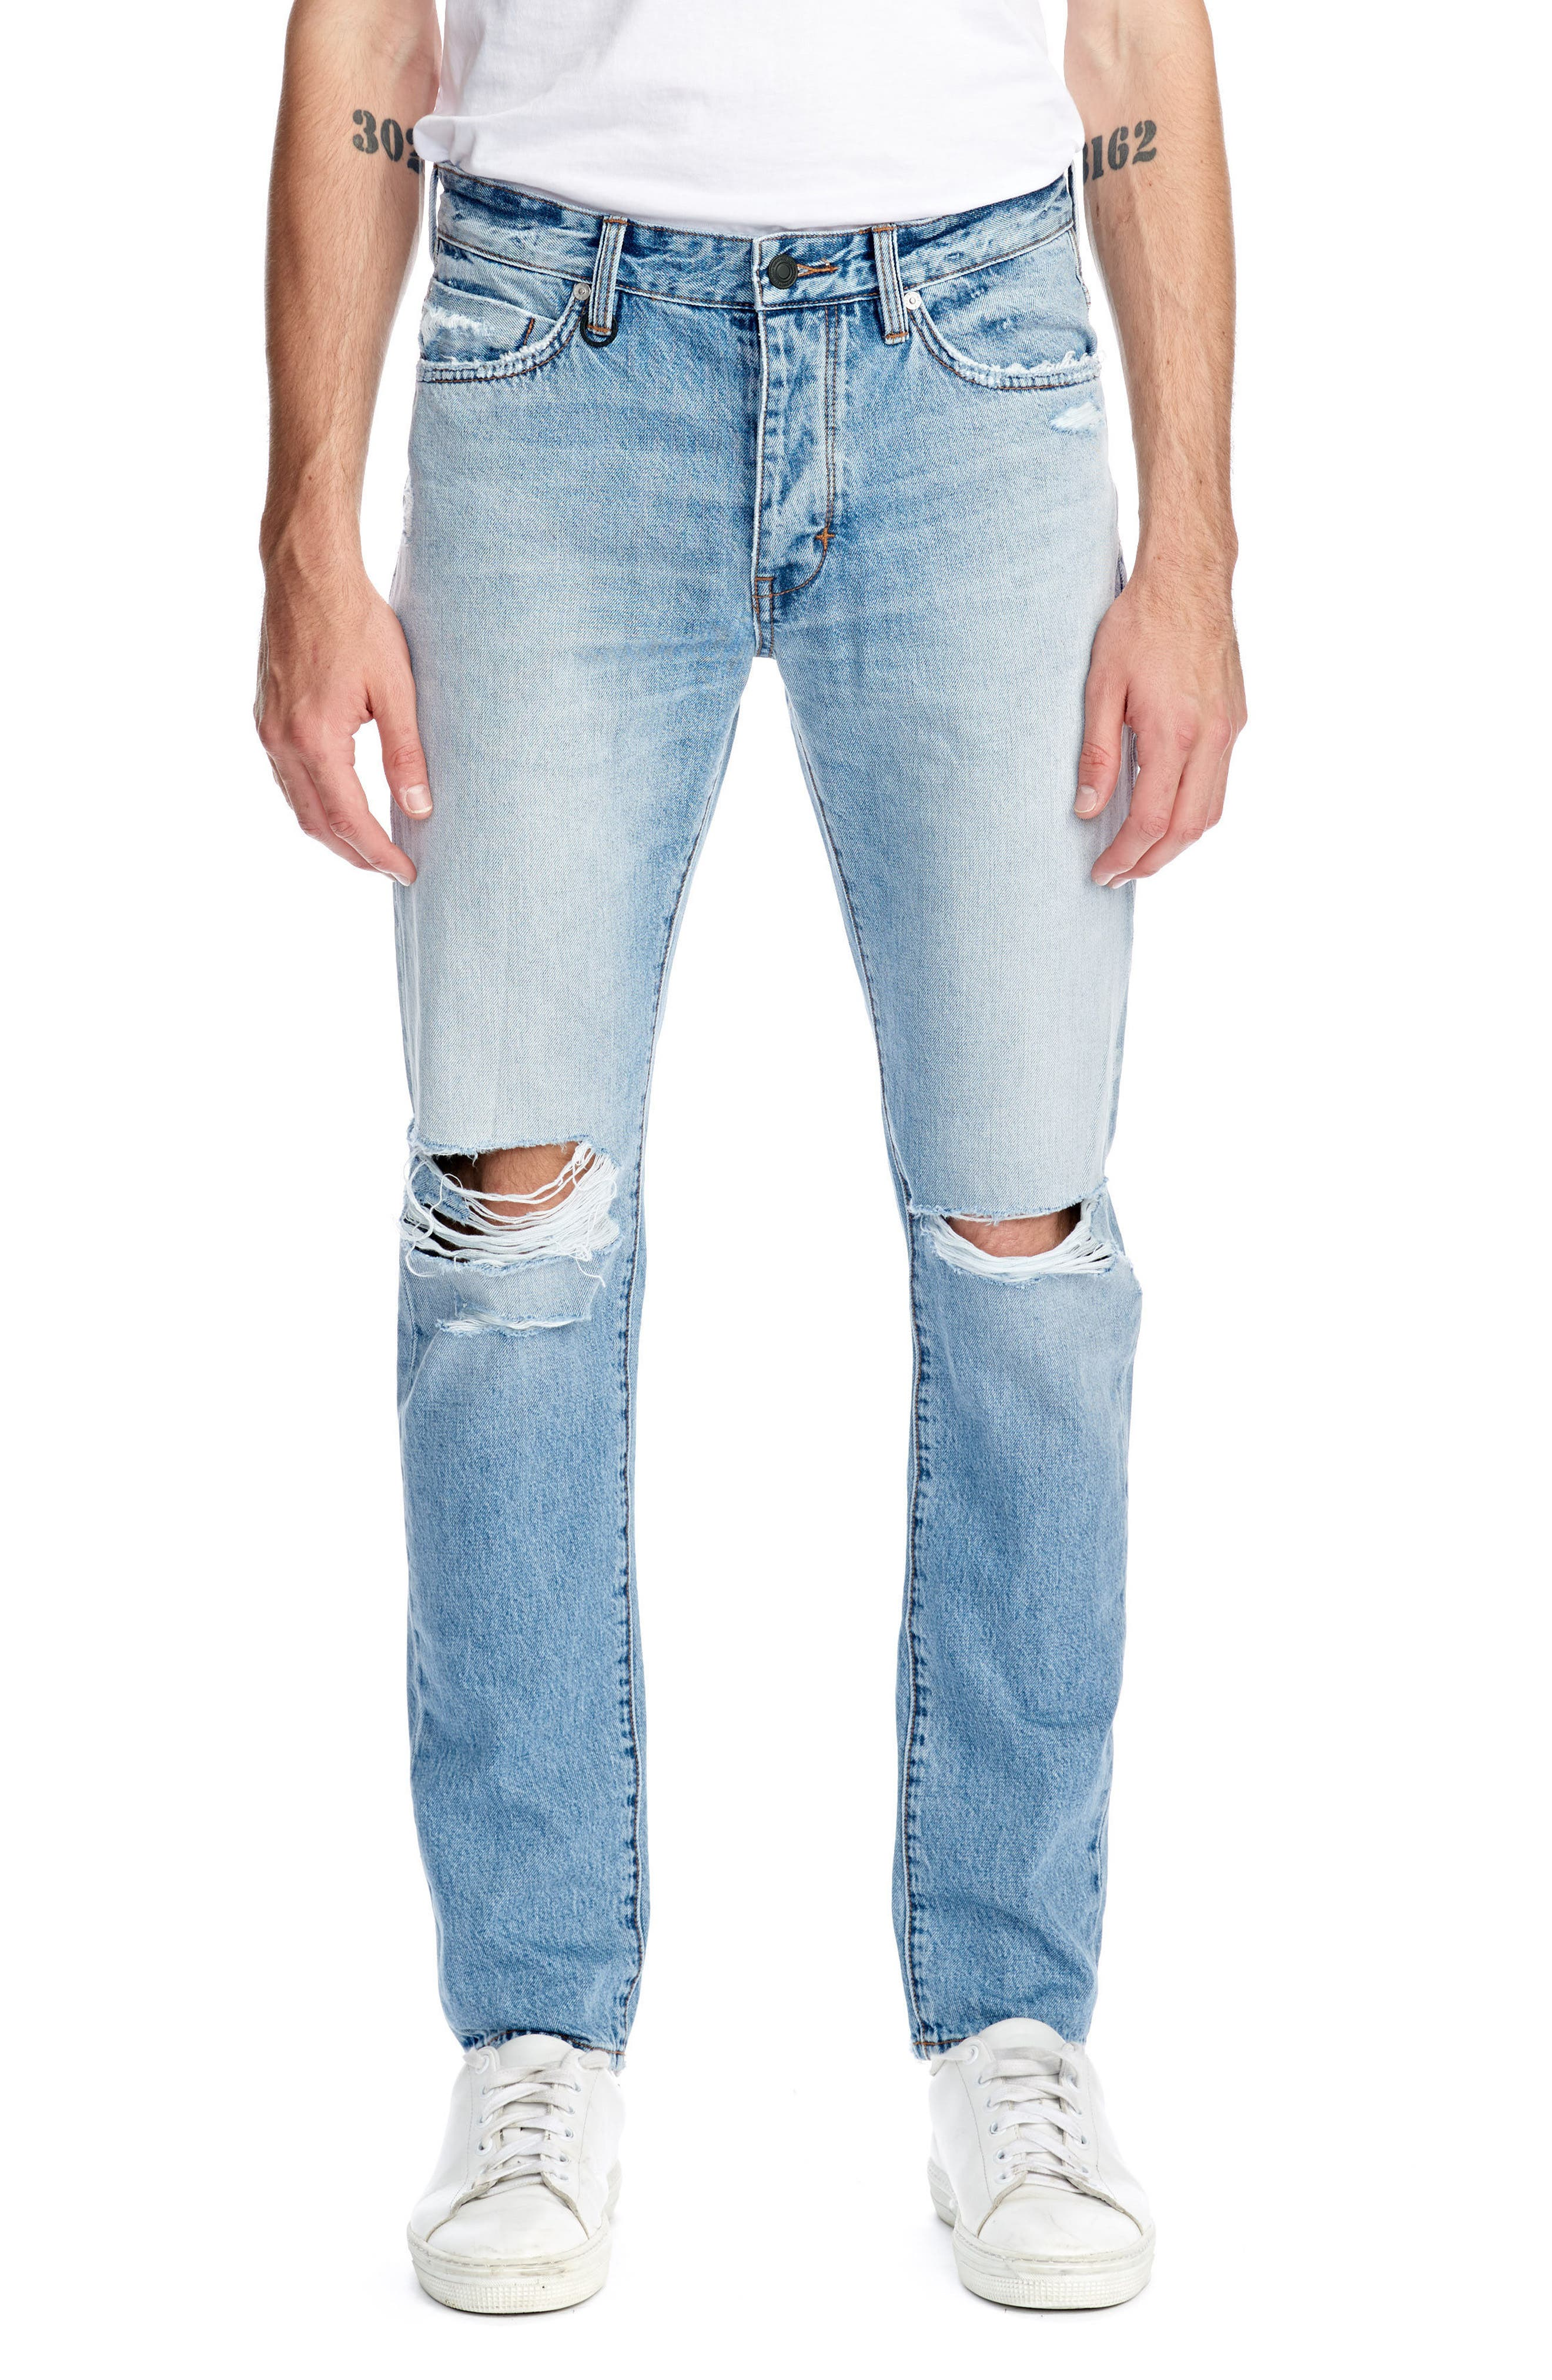 Lou Slim Fit Jeans,                         Main,                         color, 405